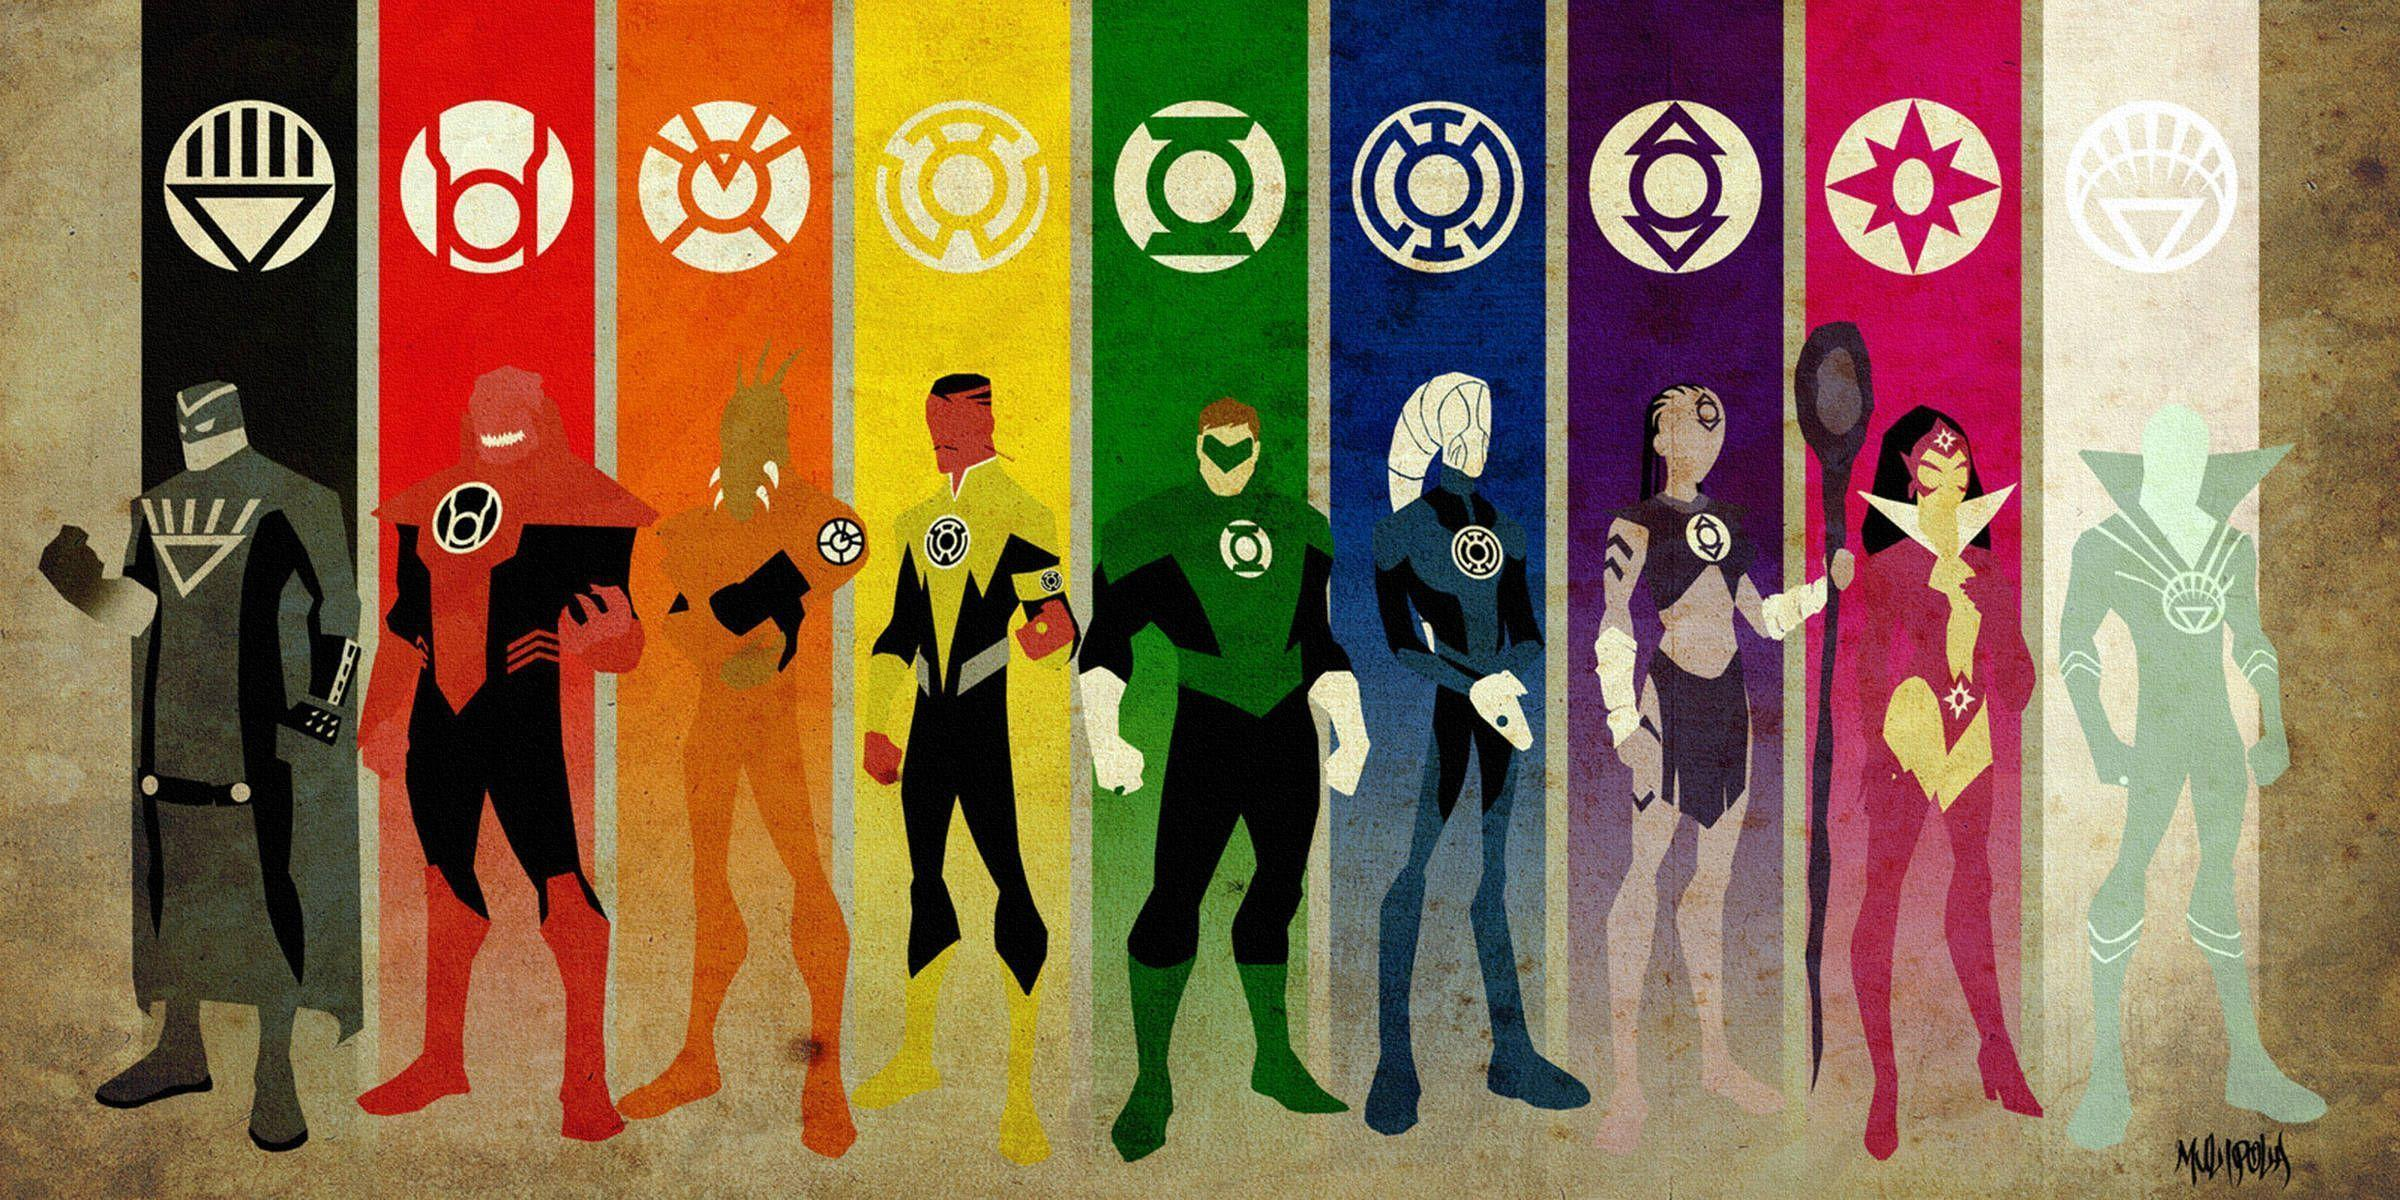 Green Lantern 2400×1200 Wallpapers 931394